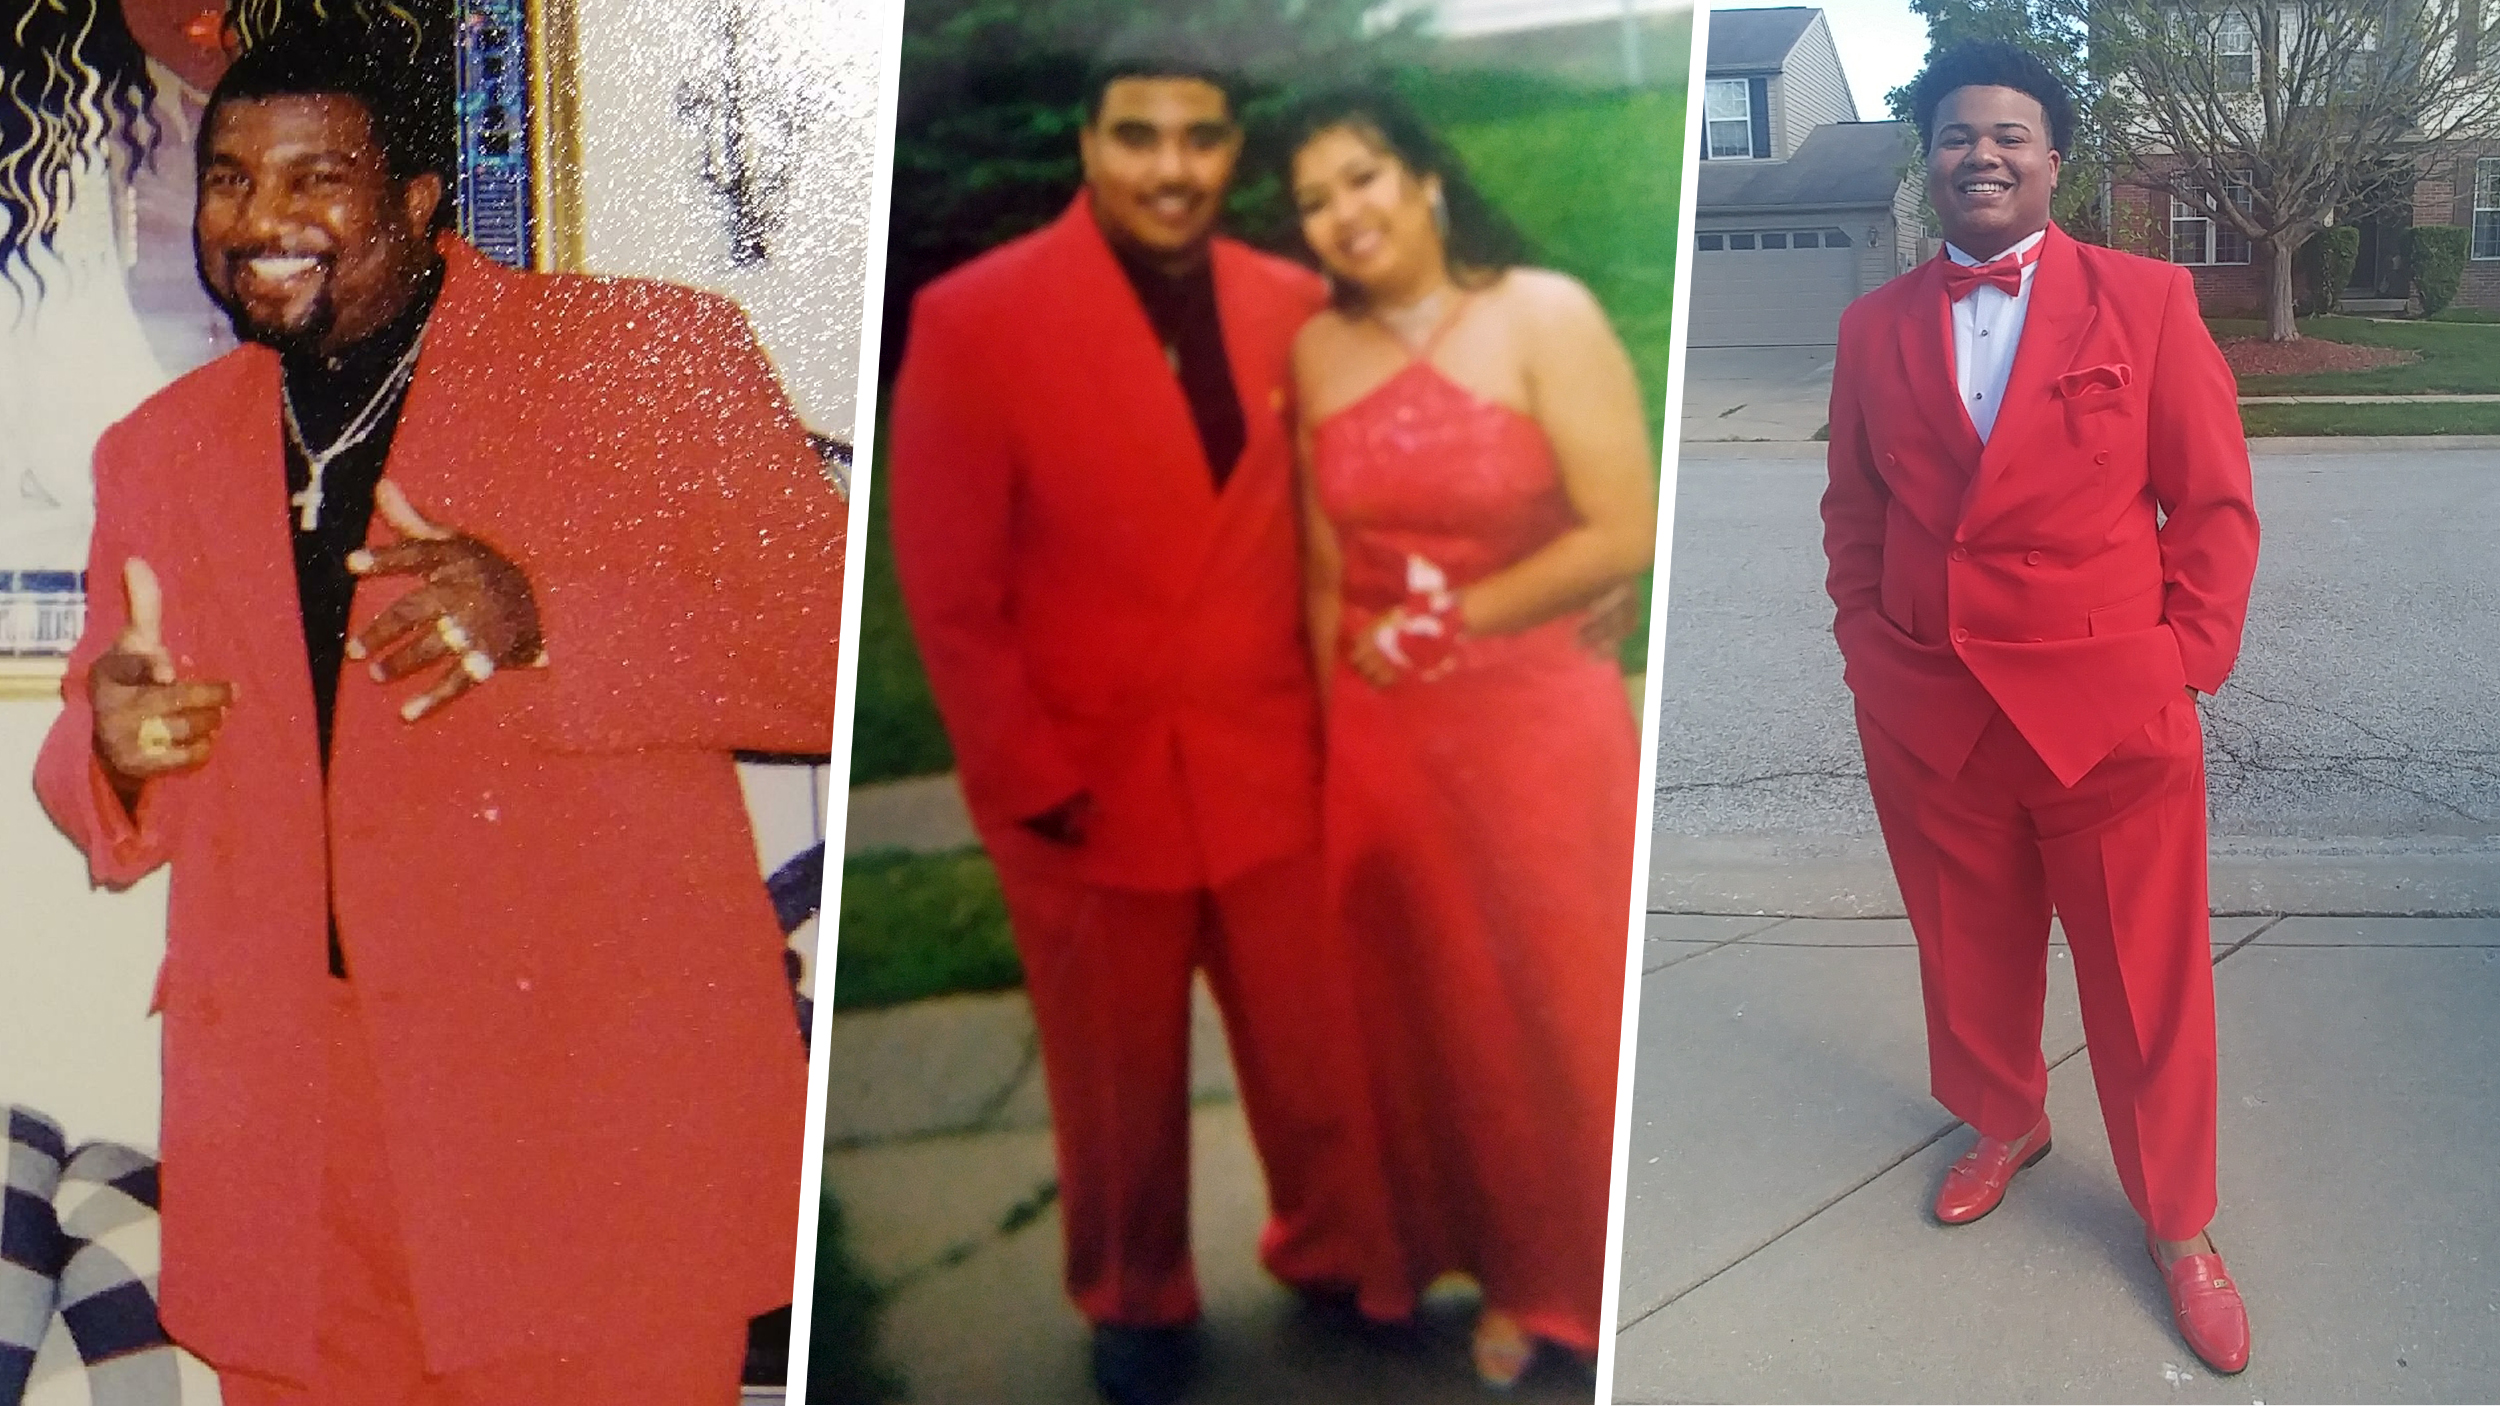 Jonathan Jessie is third generation in his family to wear bright red ...